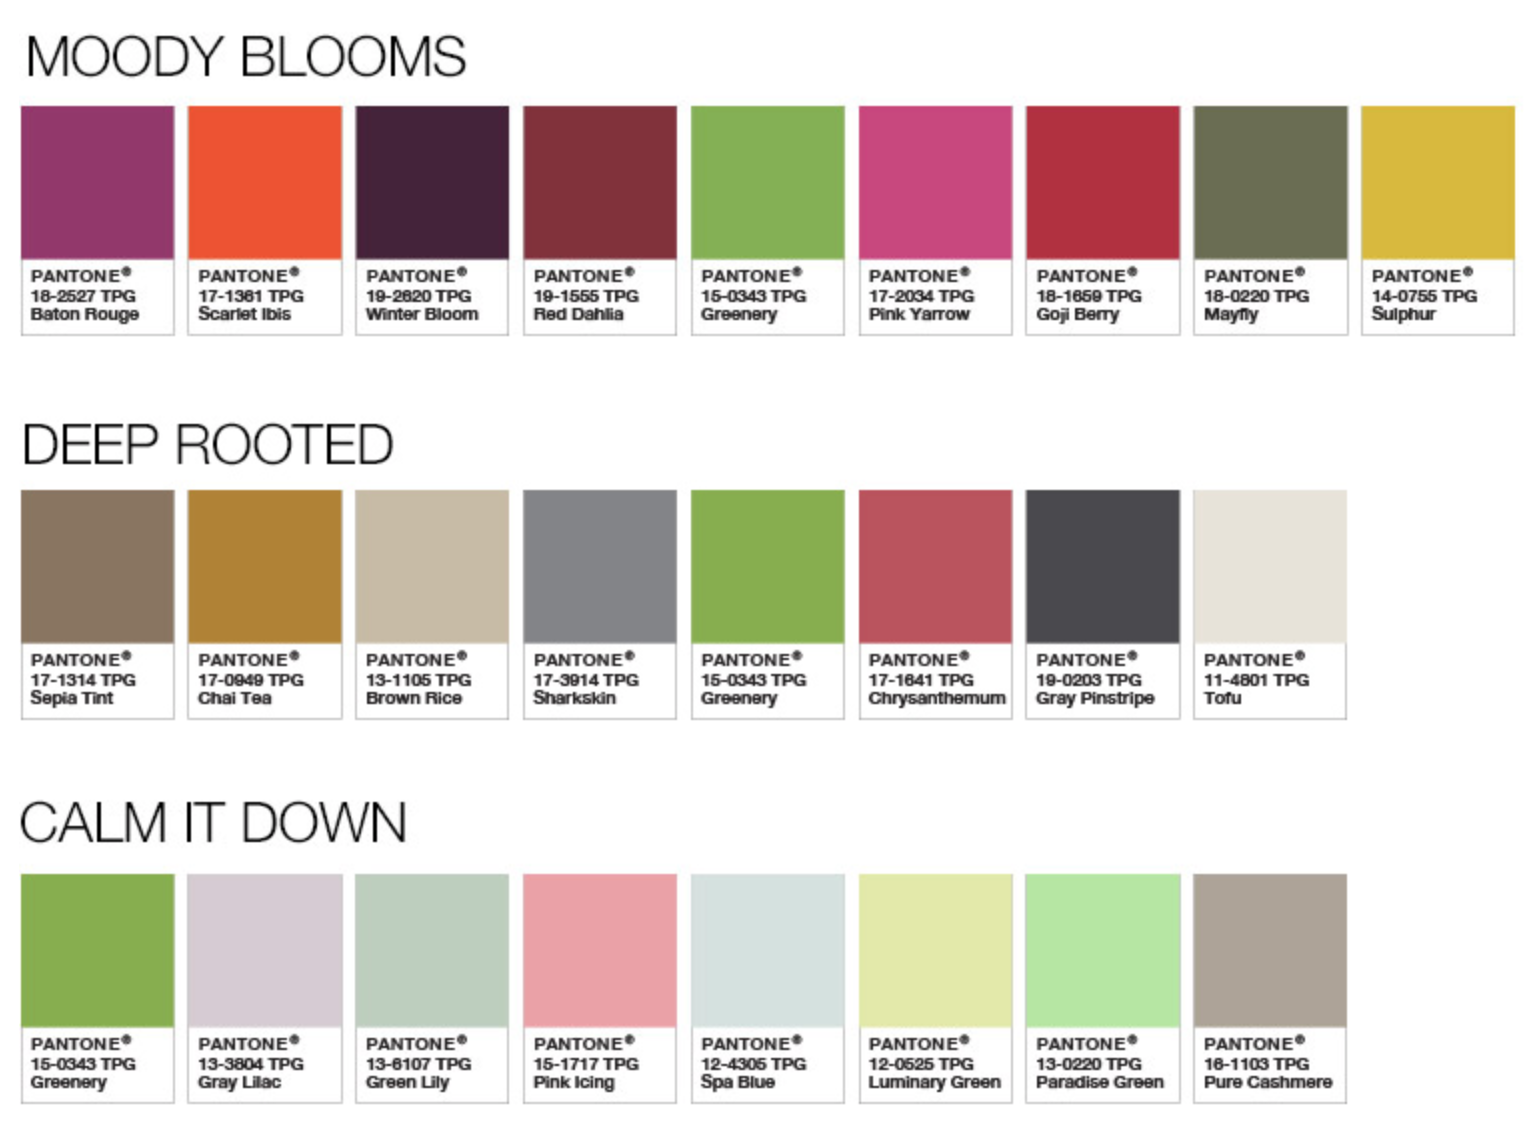 Pantone Color Palettes Moody Blooms Deep Rooted Calm It